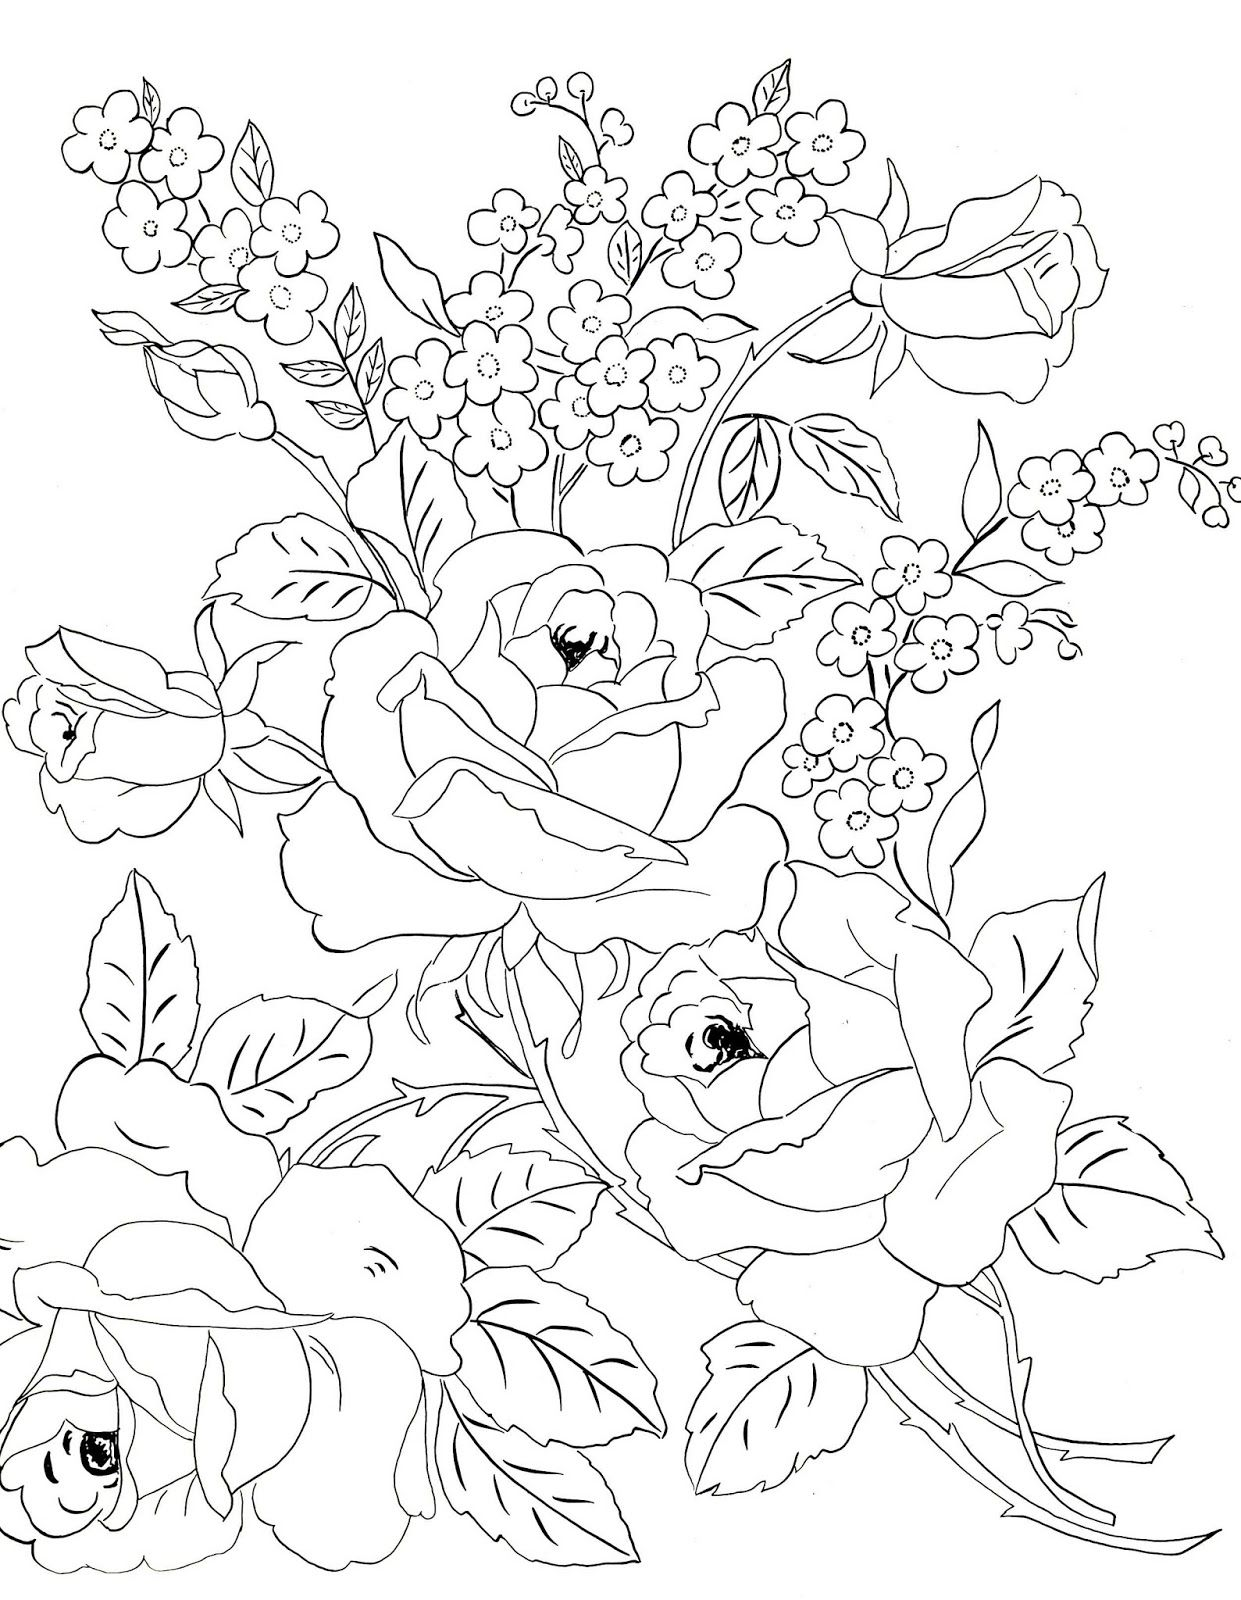 Two More Of These Lovely Embroidery Patterns From Flower Designs By Jane Snead